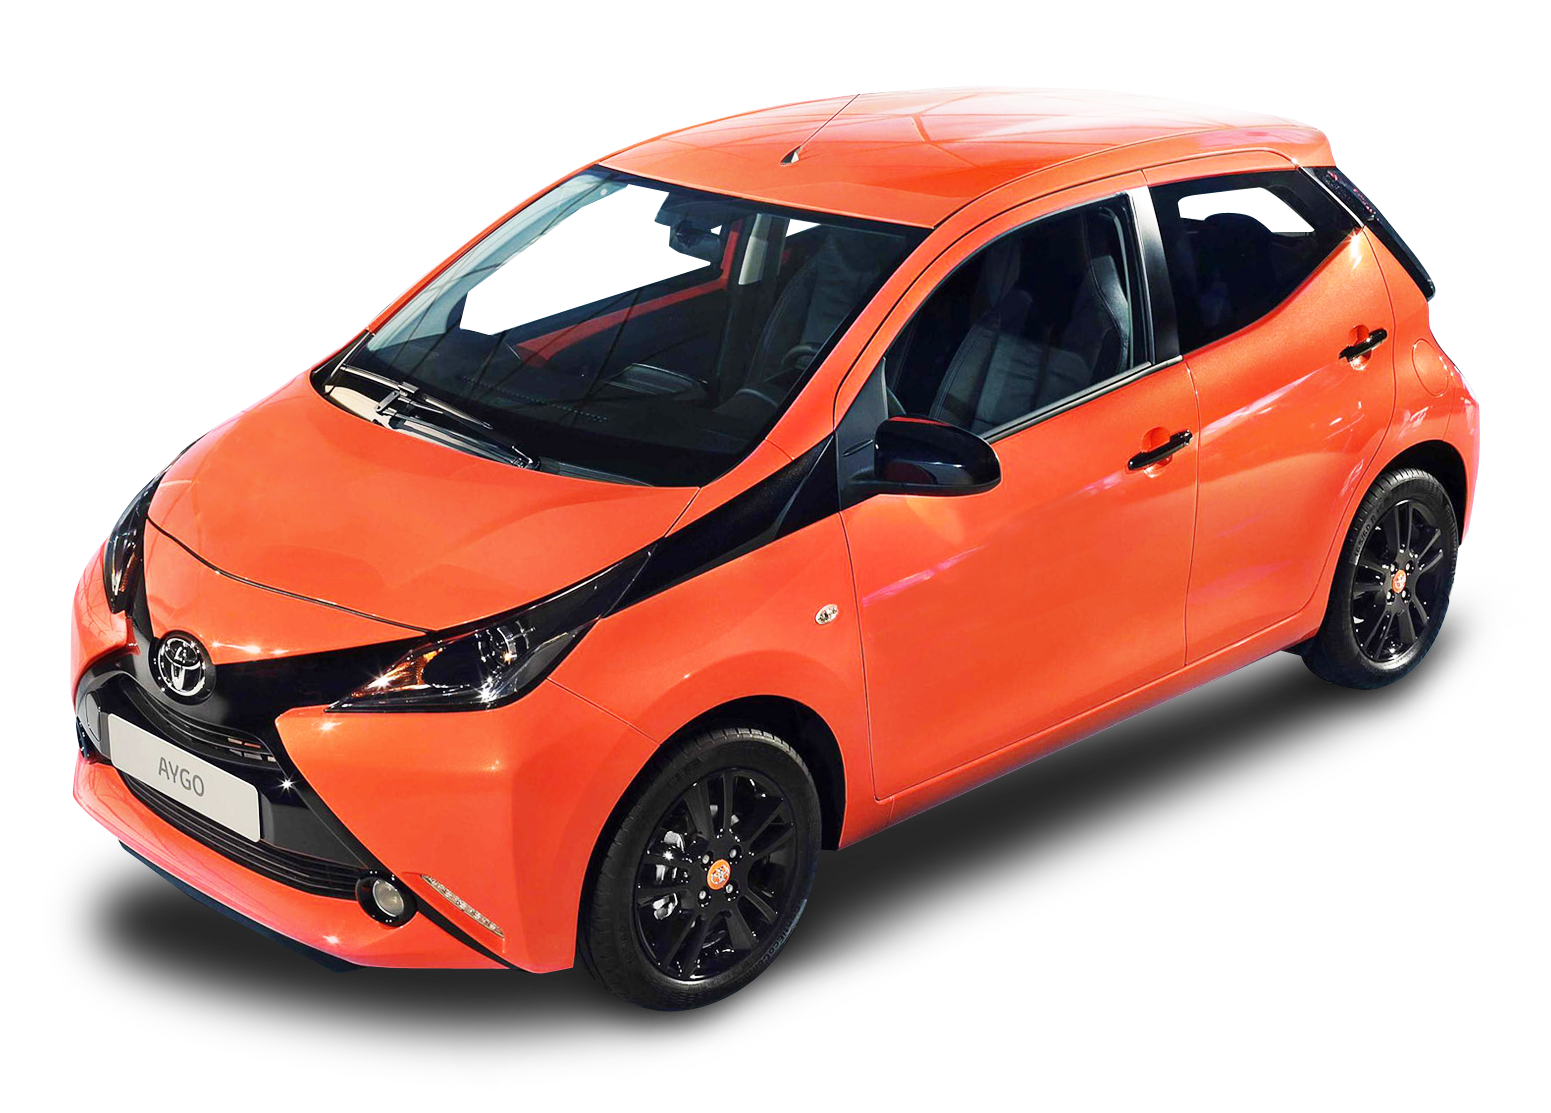 toyota_aygo_rhodes_rent_a_car_services